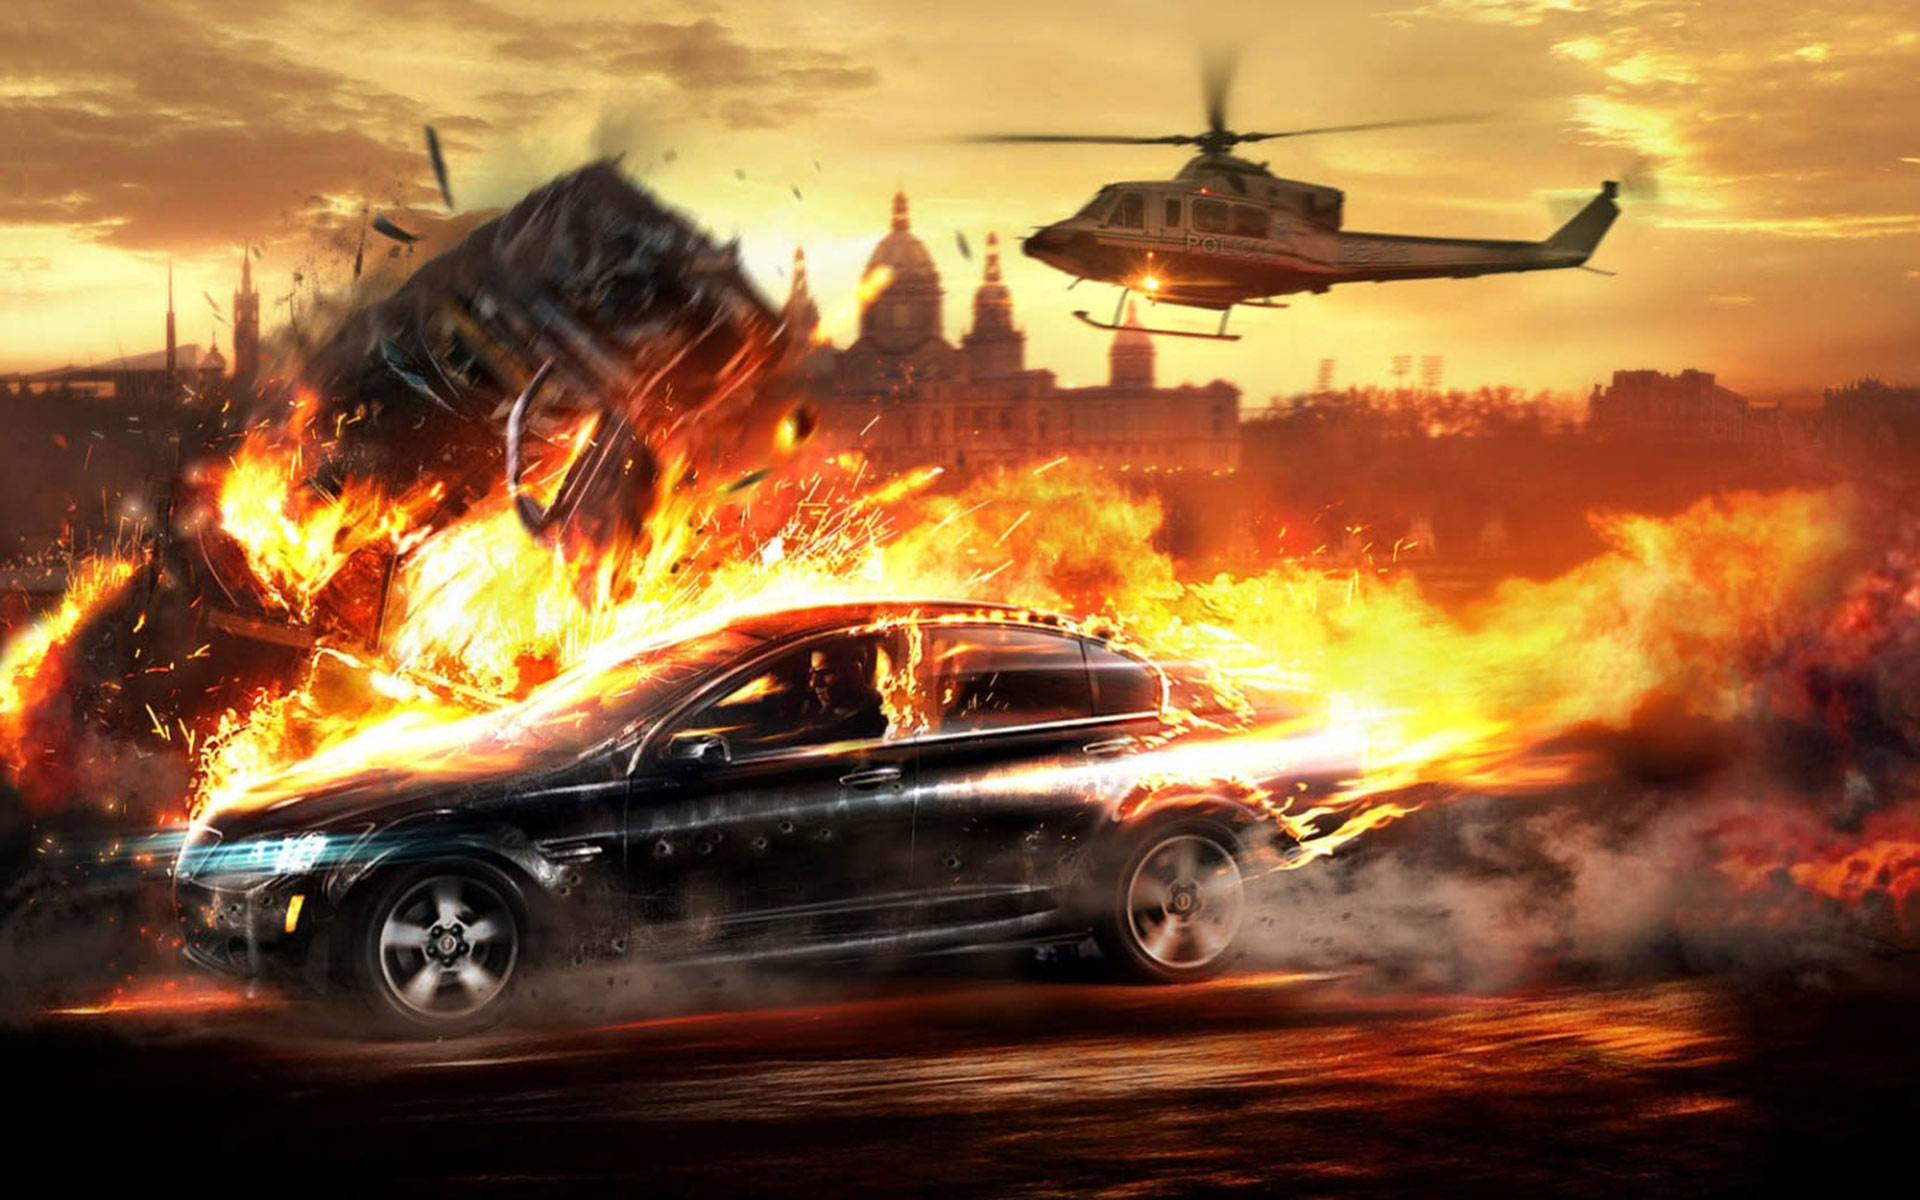 Autos Guerra Wallpapers Hd Wallpaper Hd Fondos De